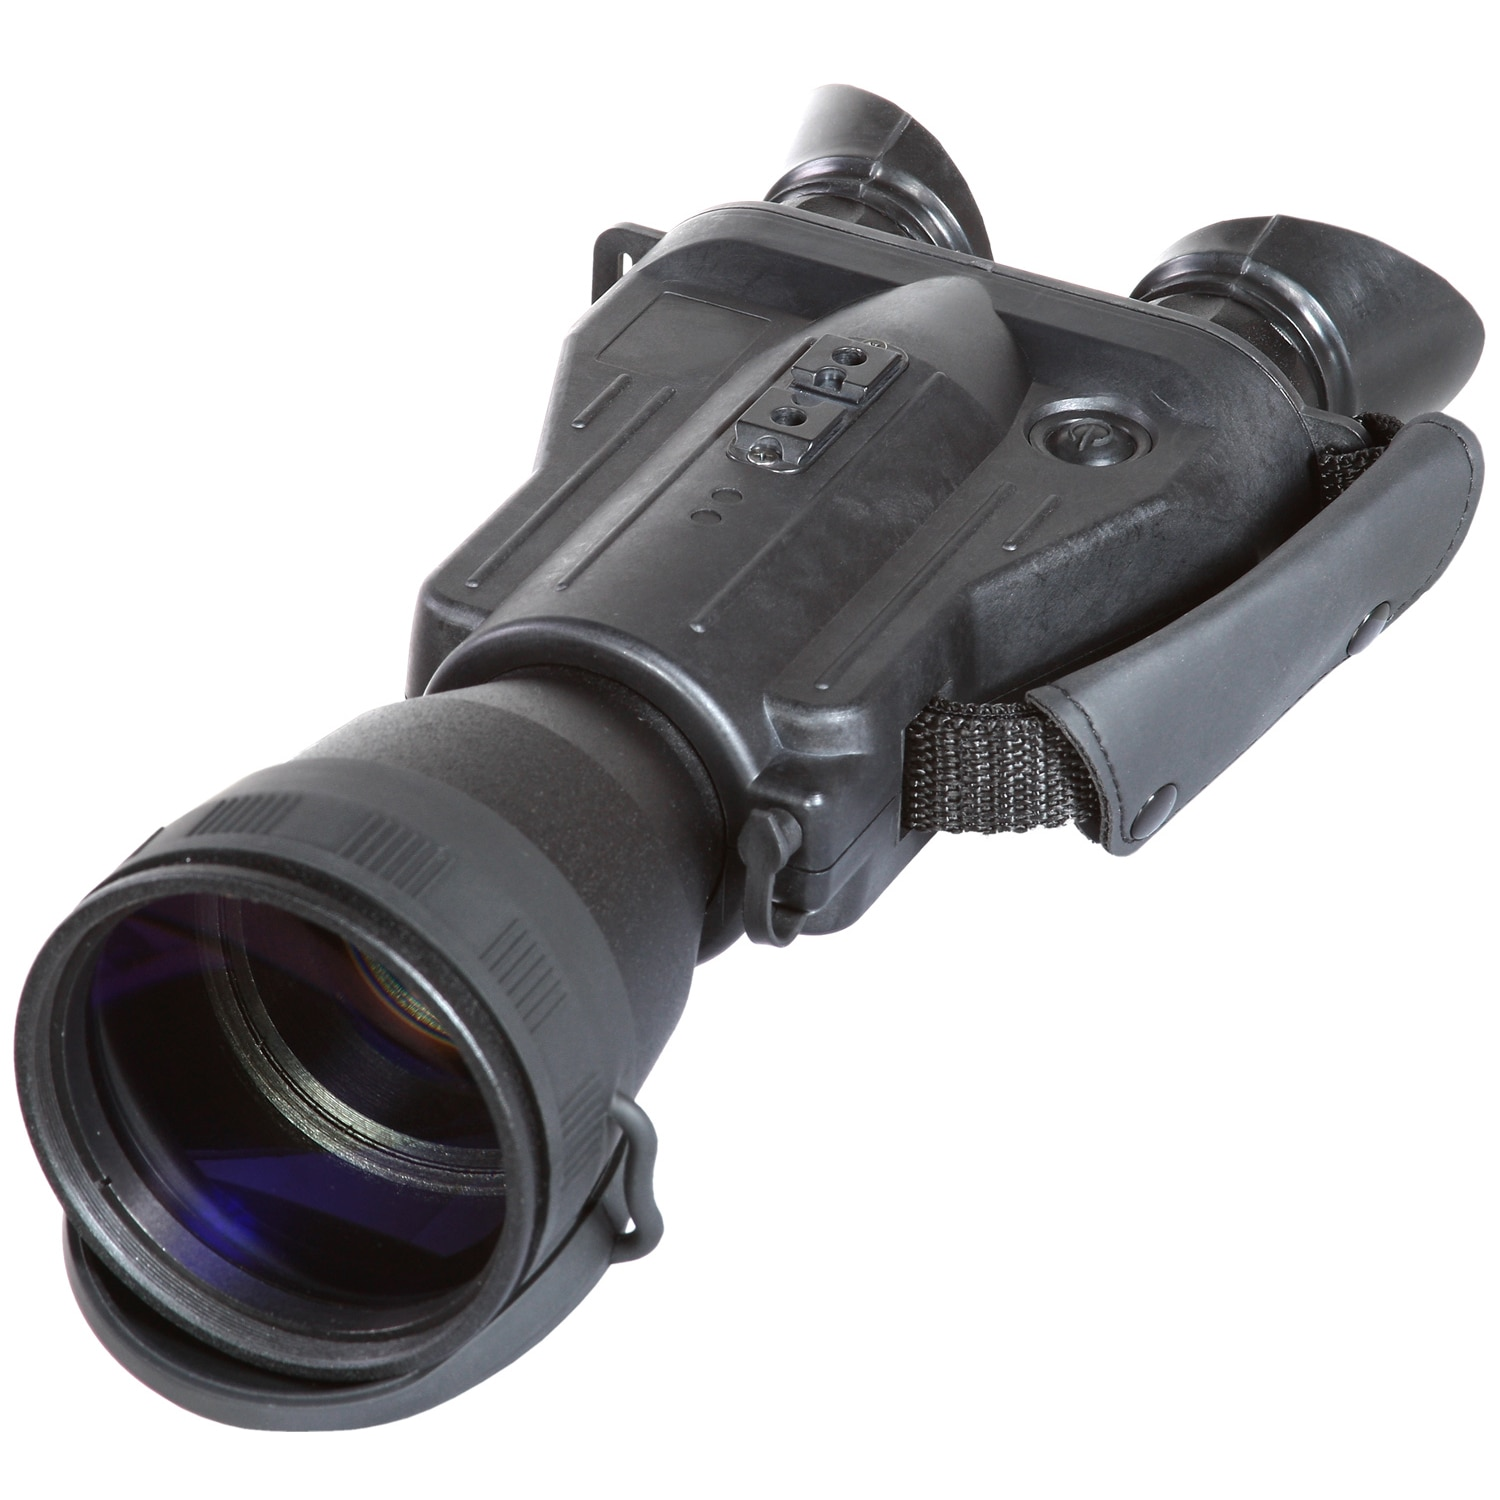 Armasight Discovery5x GEN 2+ QS Night Vision Bi-Ocular with XLR-IR850 Long-range Infrared Illuminator by Overstock